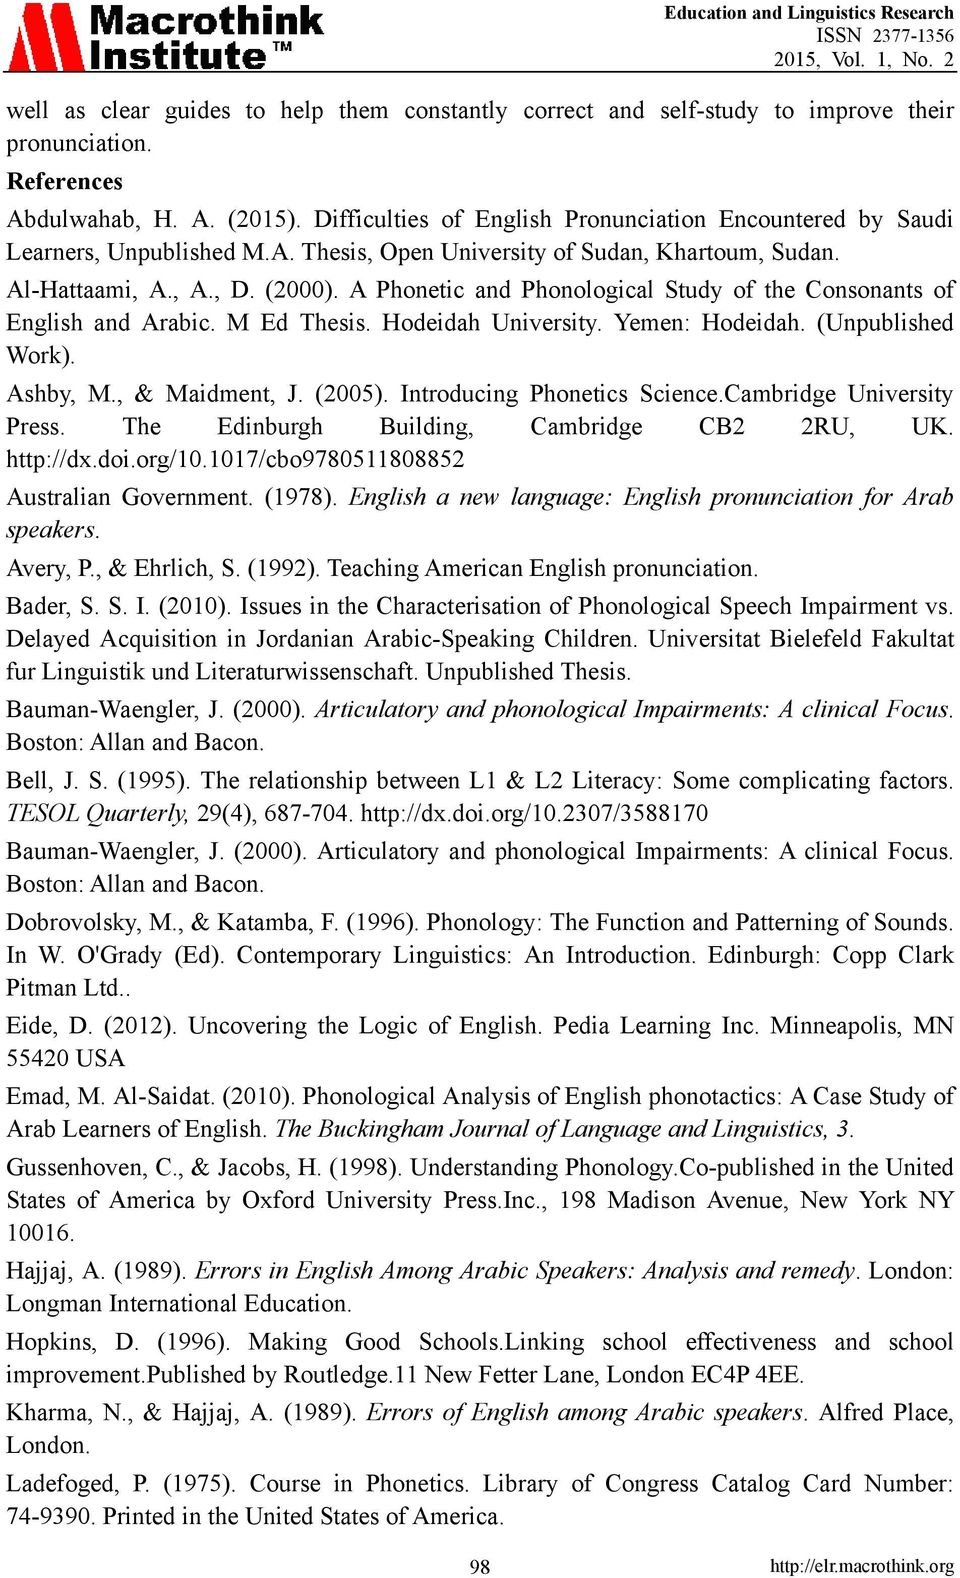 pronunciation for advanced learners of english pdf